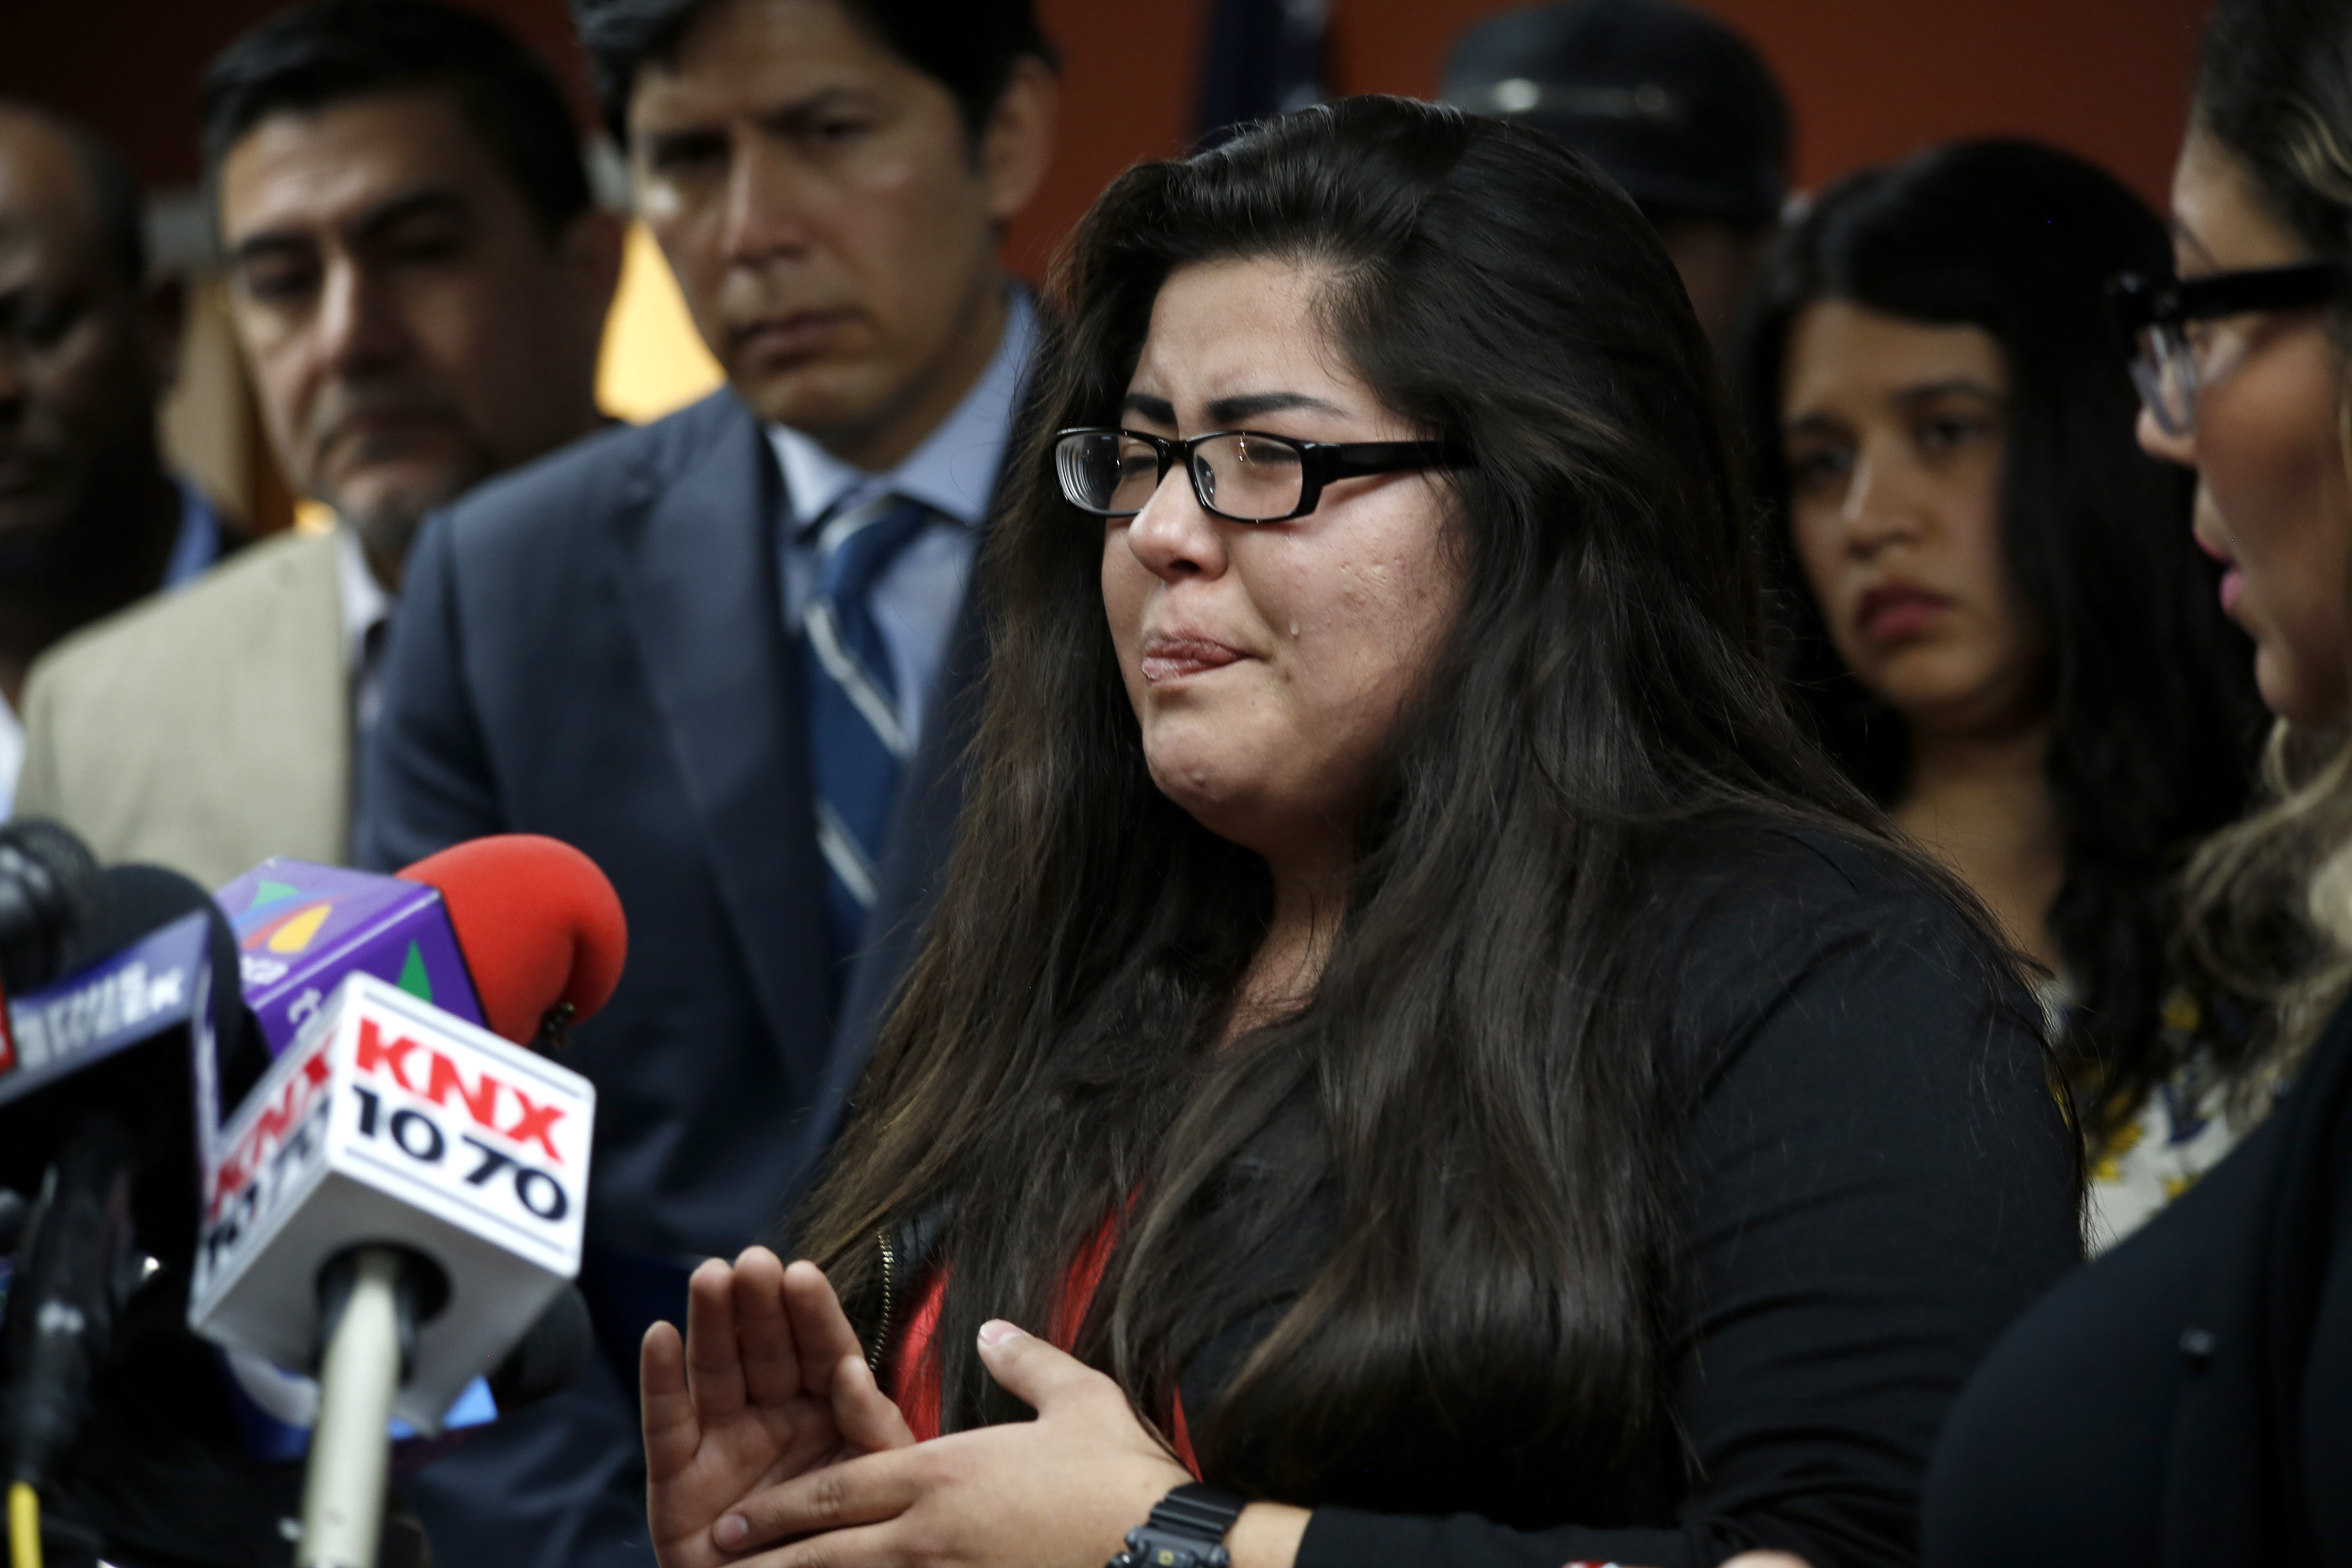 02/10/17/ LOS ANGELES/An emotional Marlene Mosqueda, 21, joined immigration advocates during a press conference at CHIRLAs Los Angeles headquarters, to express her outrage of her father, Manuel Mosque Lopez, being detained by ICE at his Van Nuys home. Immigration advocates claim more than 100 people were detained Thursday as U.S. Immigration and Customs Enforcement officials conducted home raids across three Southern California counties. (Photo Aurelia Ventura/ La Opinion)